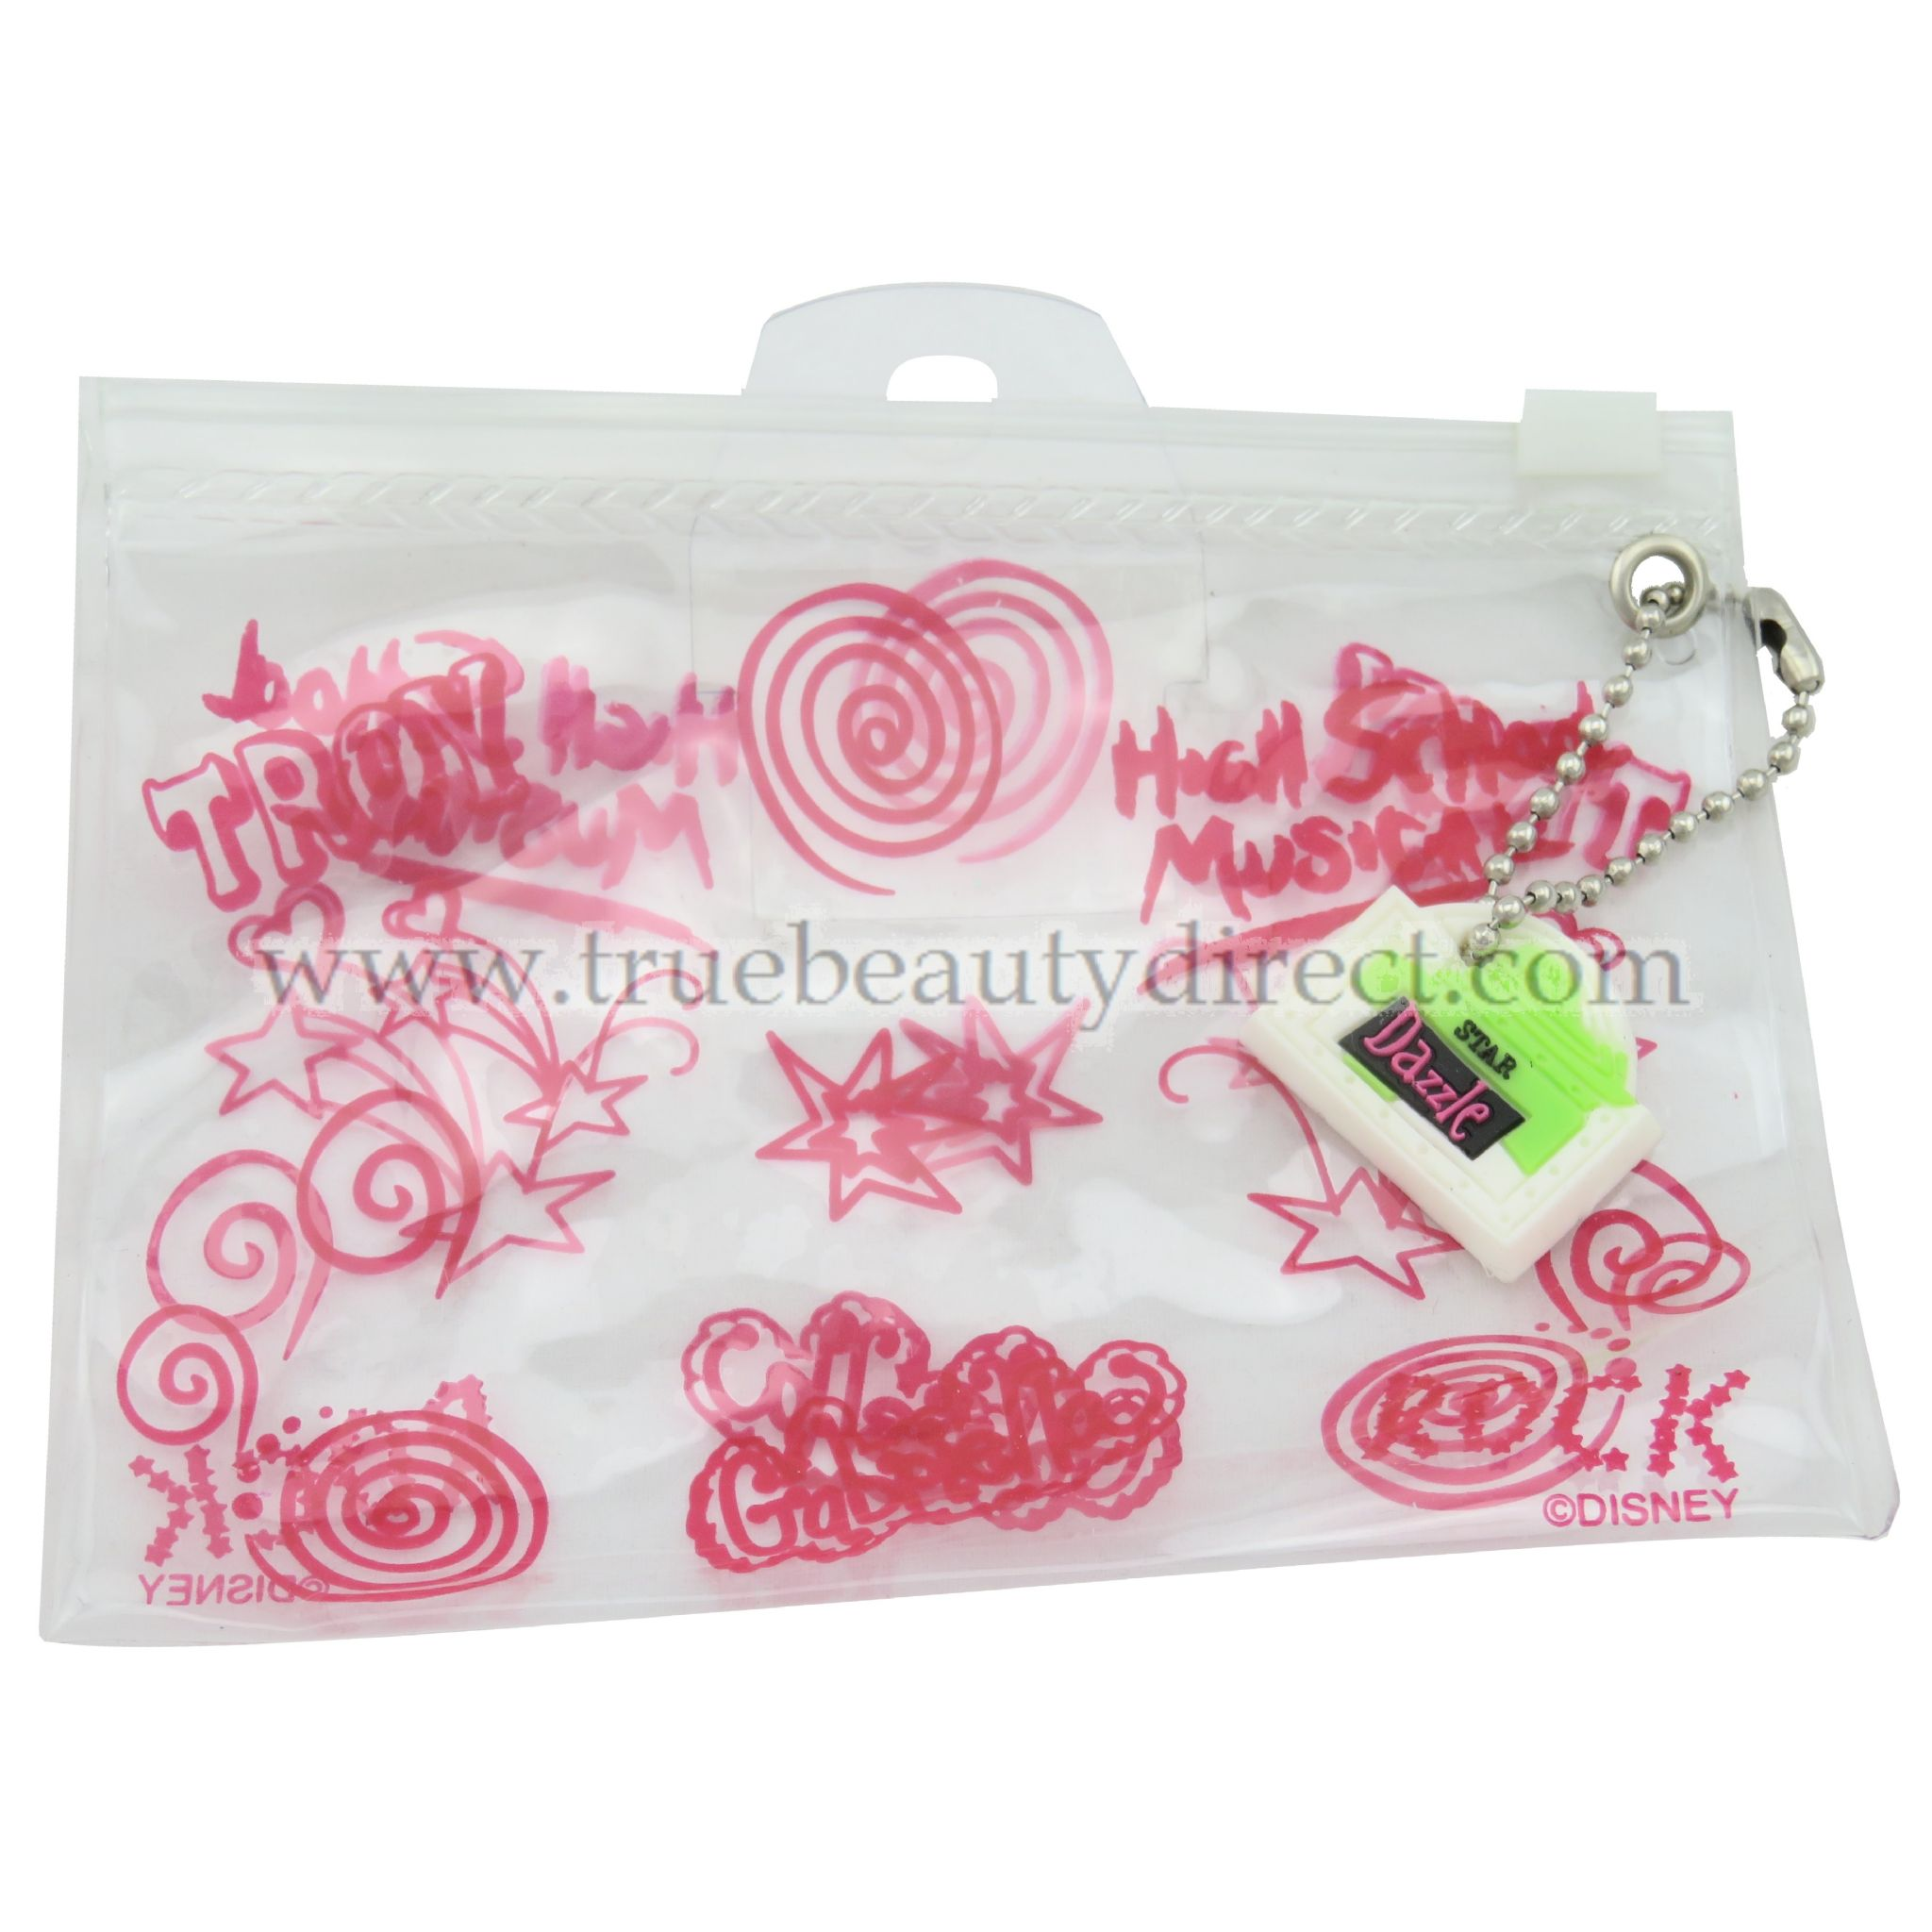 DISNEY HIGH SCHOOL MUSICAL LIPGLOSS SET AND MAKE UP CASE